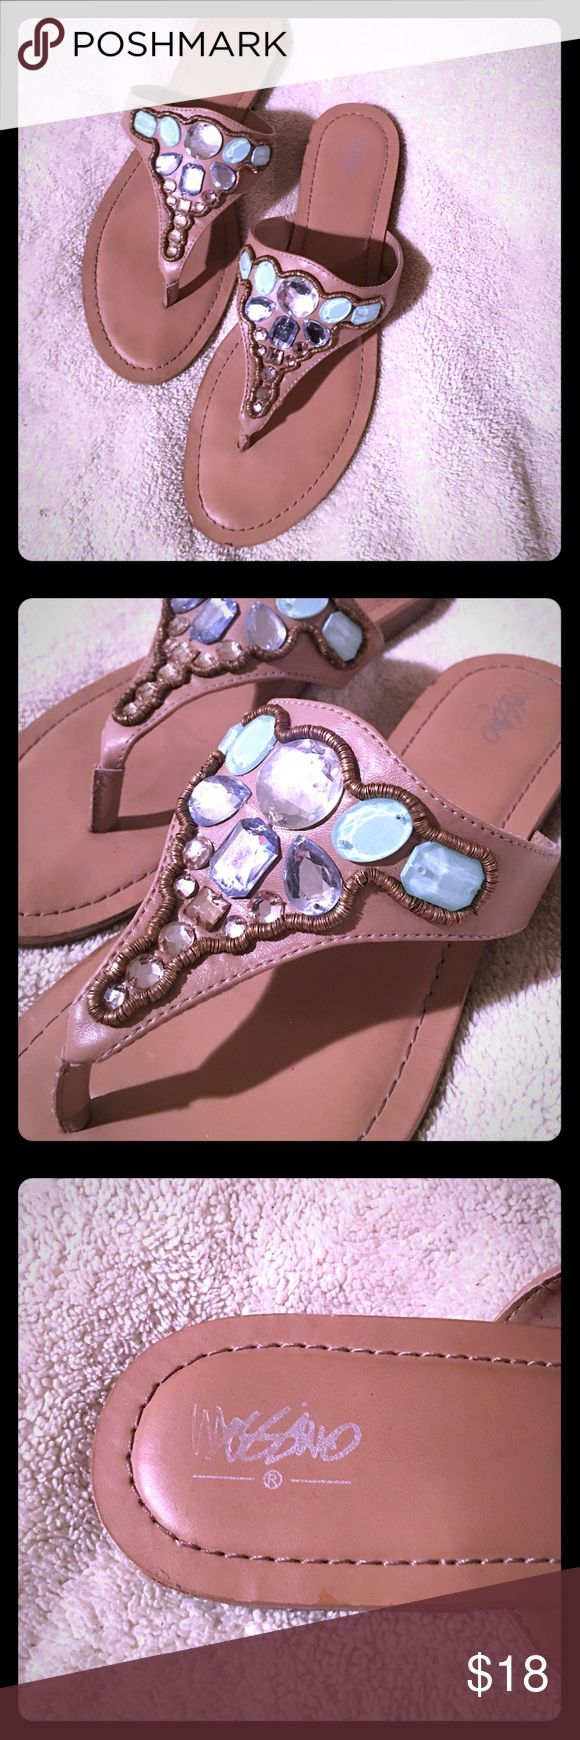 😍 Jeweled sandals 😍 LOVE these sandals! Gorgeous jewels 😍 not much of a heel. Tan, with turquoise, and light blue jewels with some clear crystals. They even have some padding on the insole! 😍 Shoes Sandals